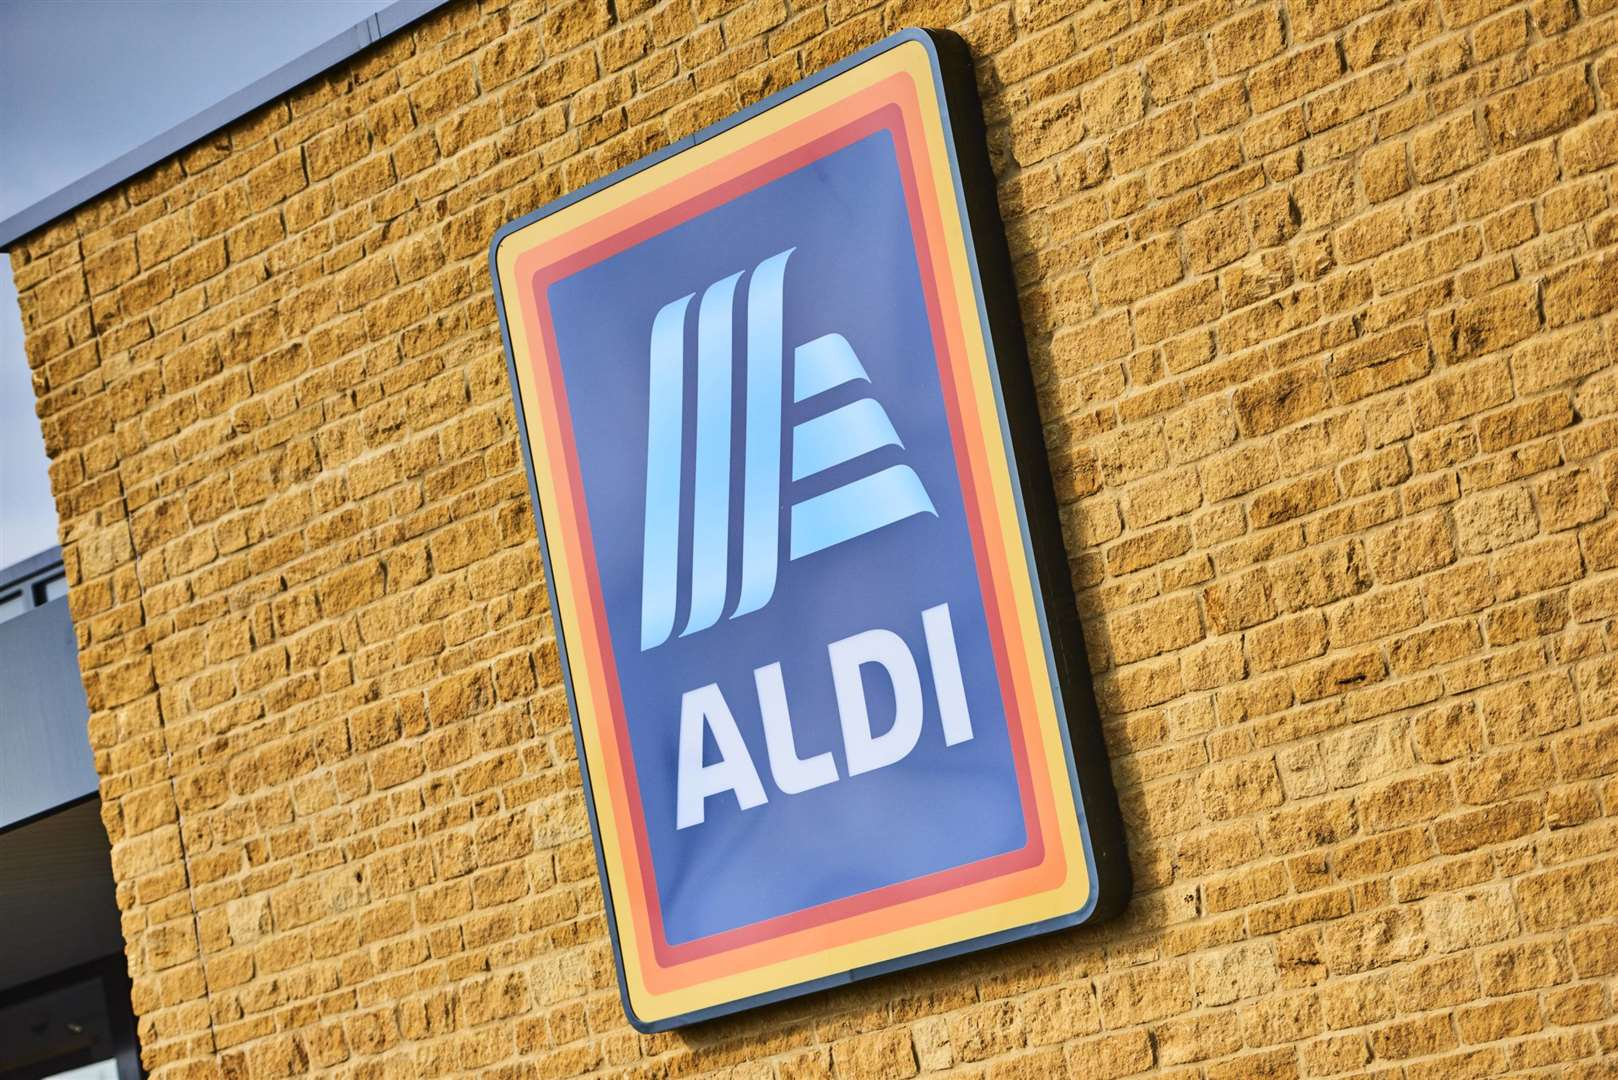 After being closed for almost two weeks, Aldi in Diss has reopened – with a transformed look to fit in with social distancing guidelines.